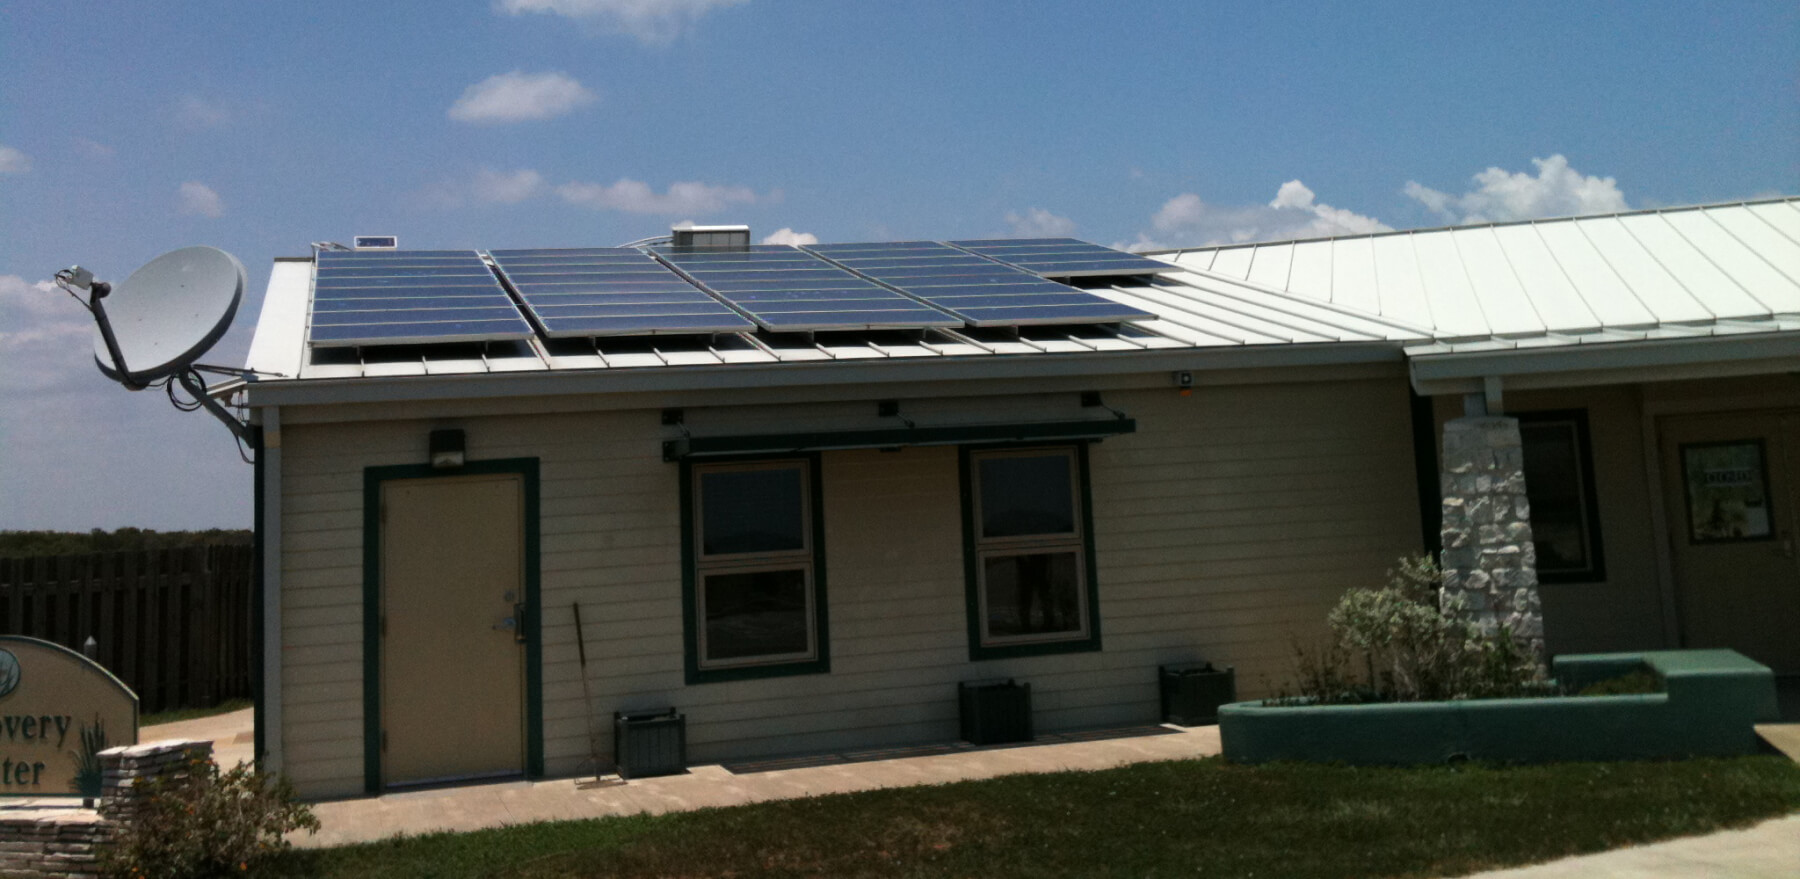 Roof with solar panels and antenna